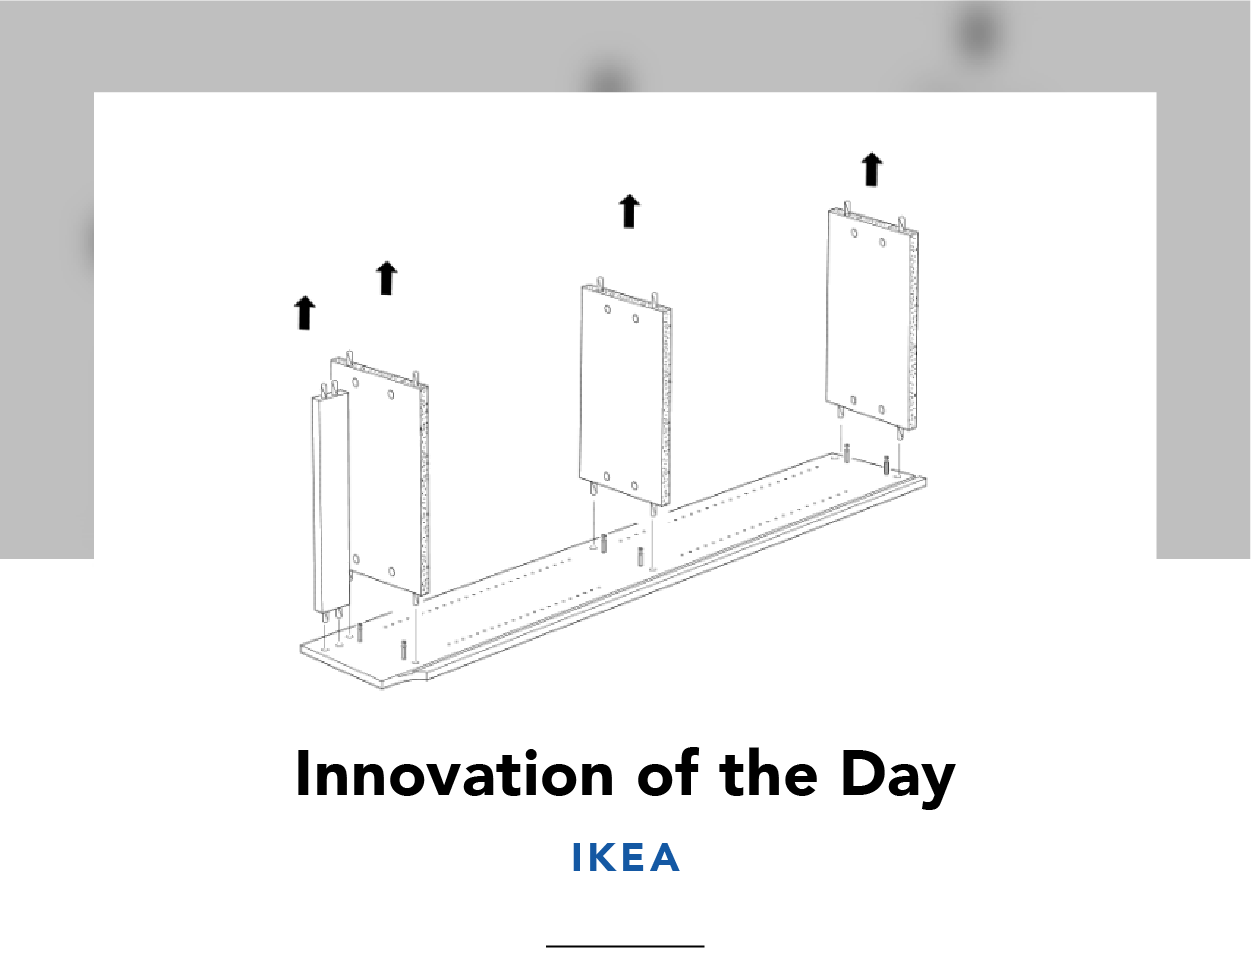 Line drawing showing how to remove shelves from an IKEA bookcase